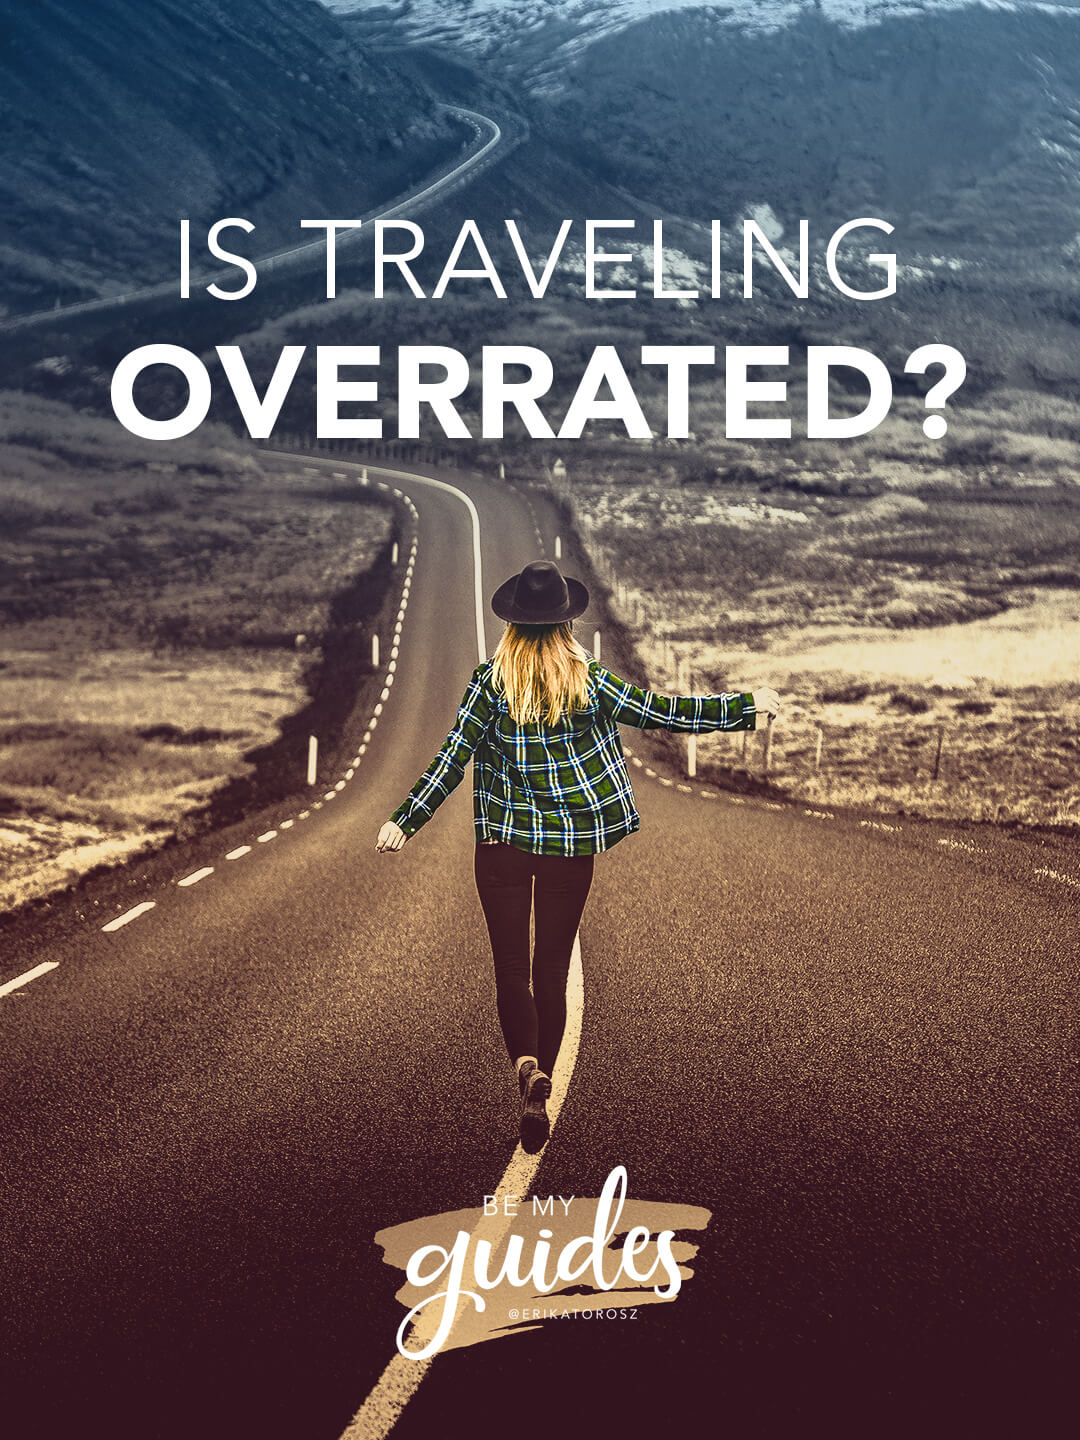 IS TRAVELING OVERRATED? DOES TRAVEL MAKE US HAPPY?